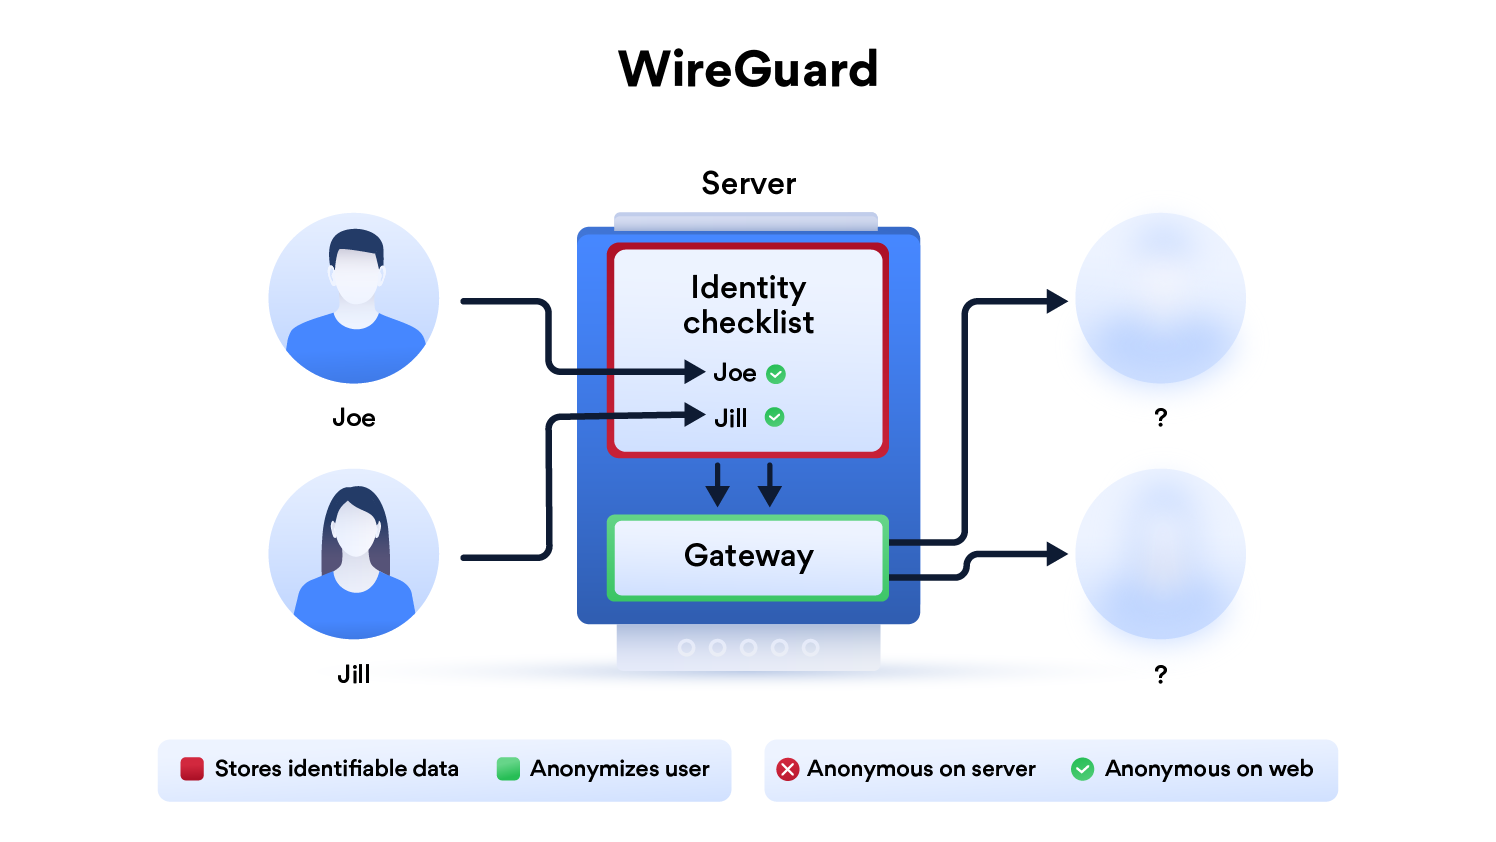 How WireGuard leaves users' anonymity vulnerable